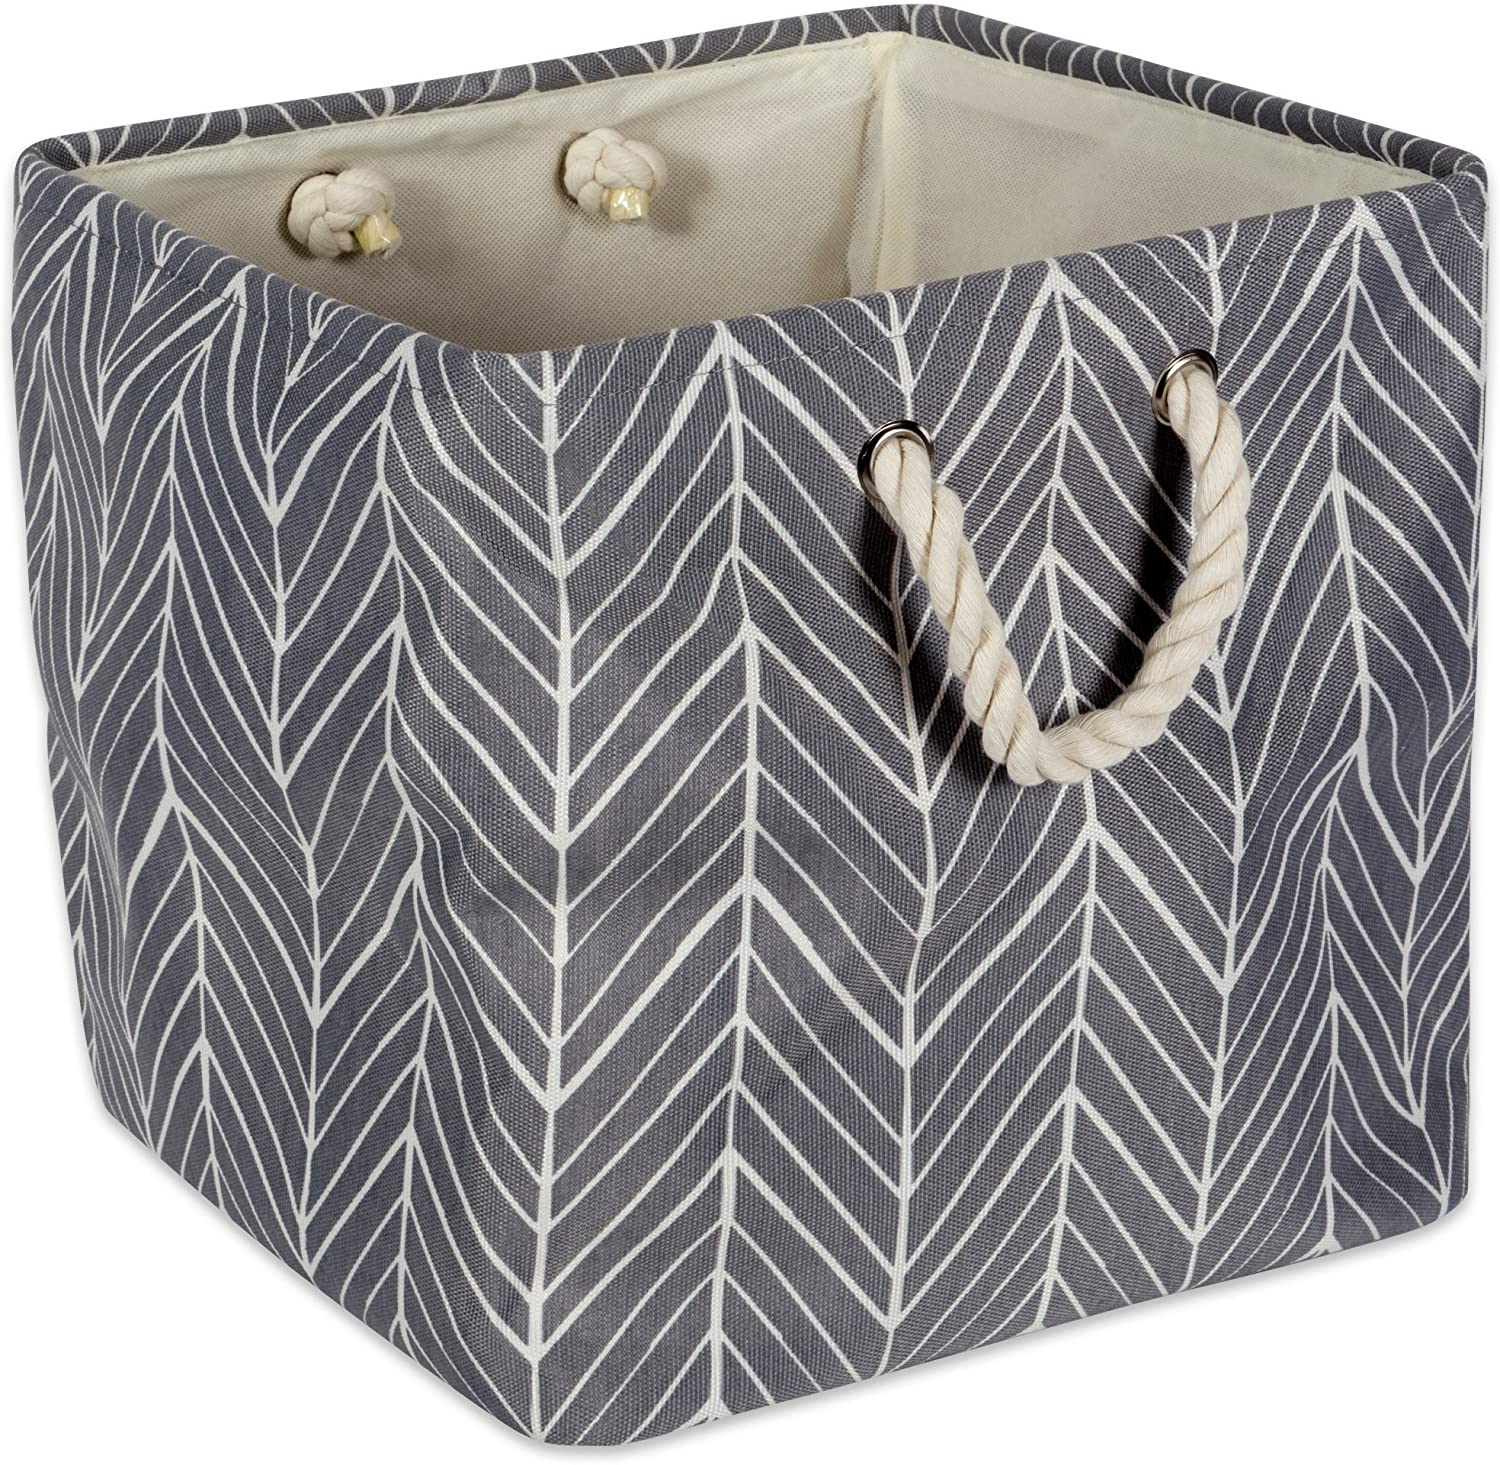 "DII Collapsible Polyester Storage Basket or Bin with Durable Cotton Handles, Home Organizer Solution for Office, Bedroom, Closet, Toys, & Laundry (11x11x11"") - Gray Herringbone"